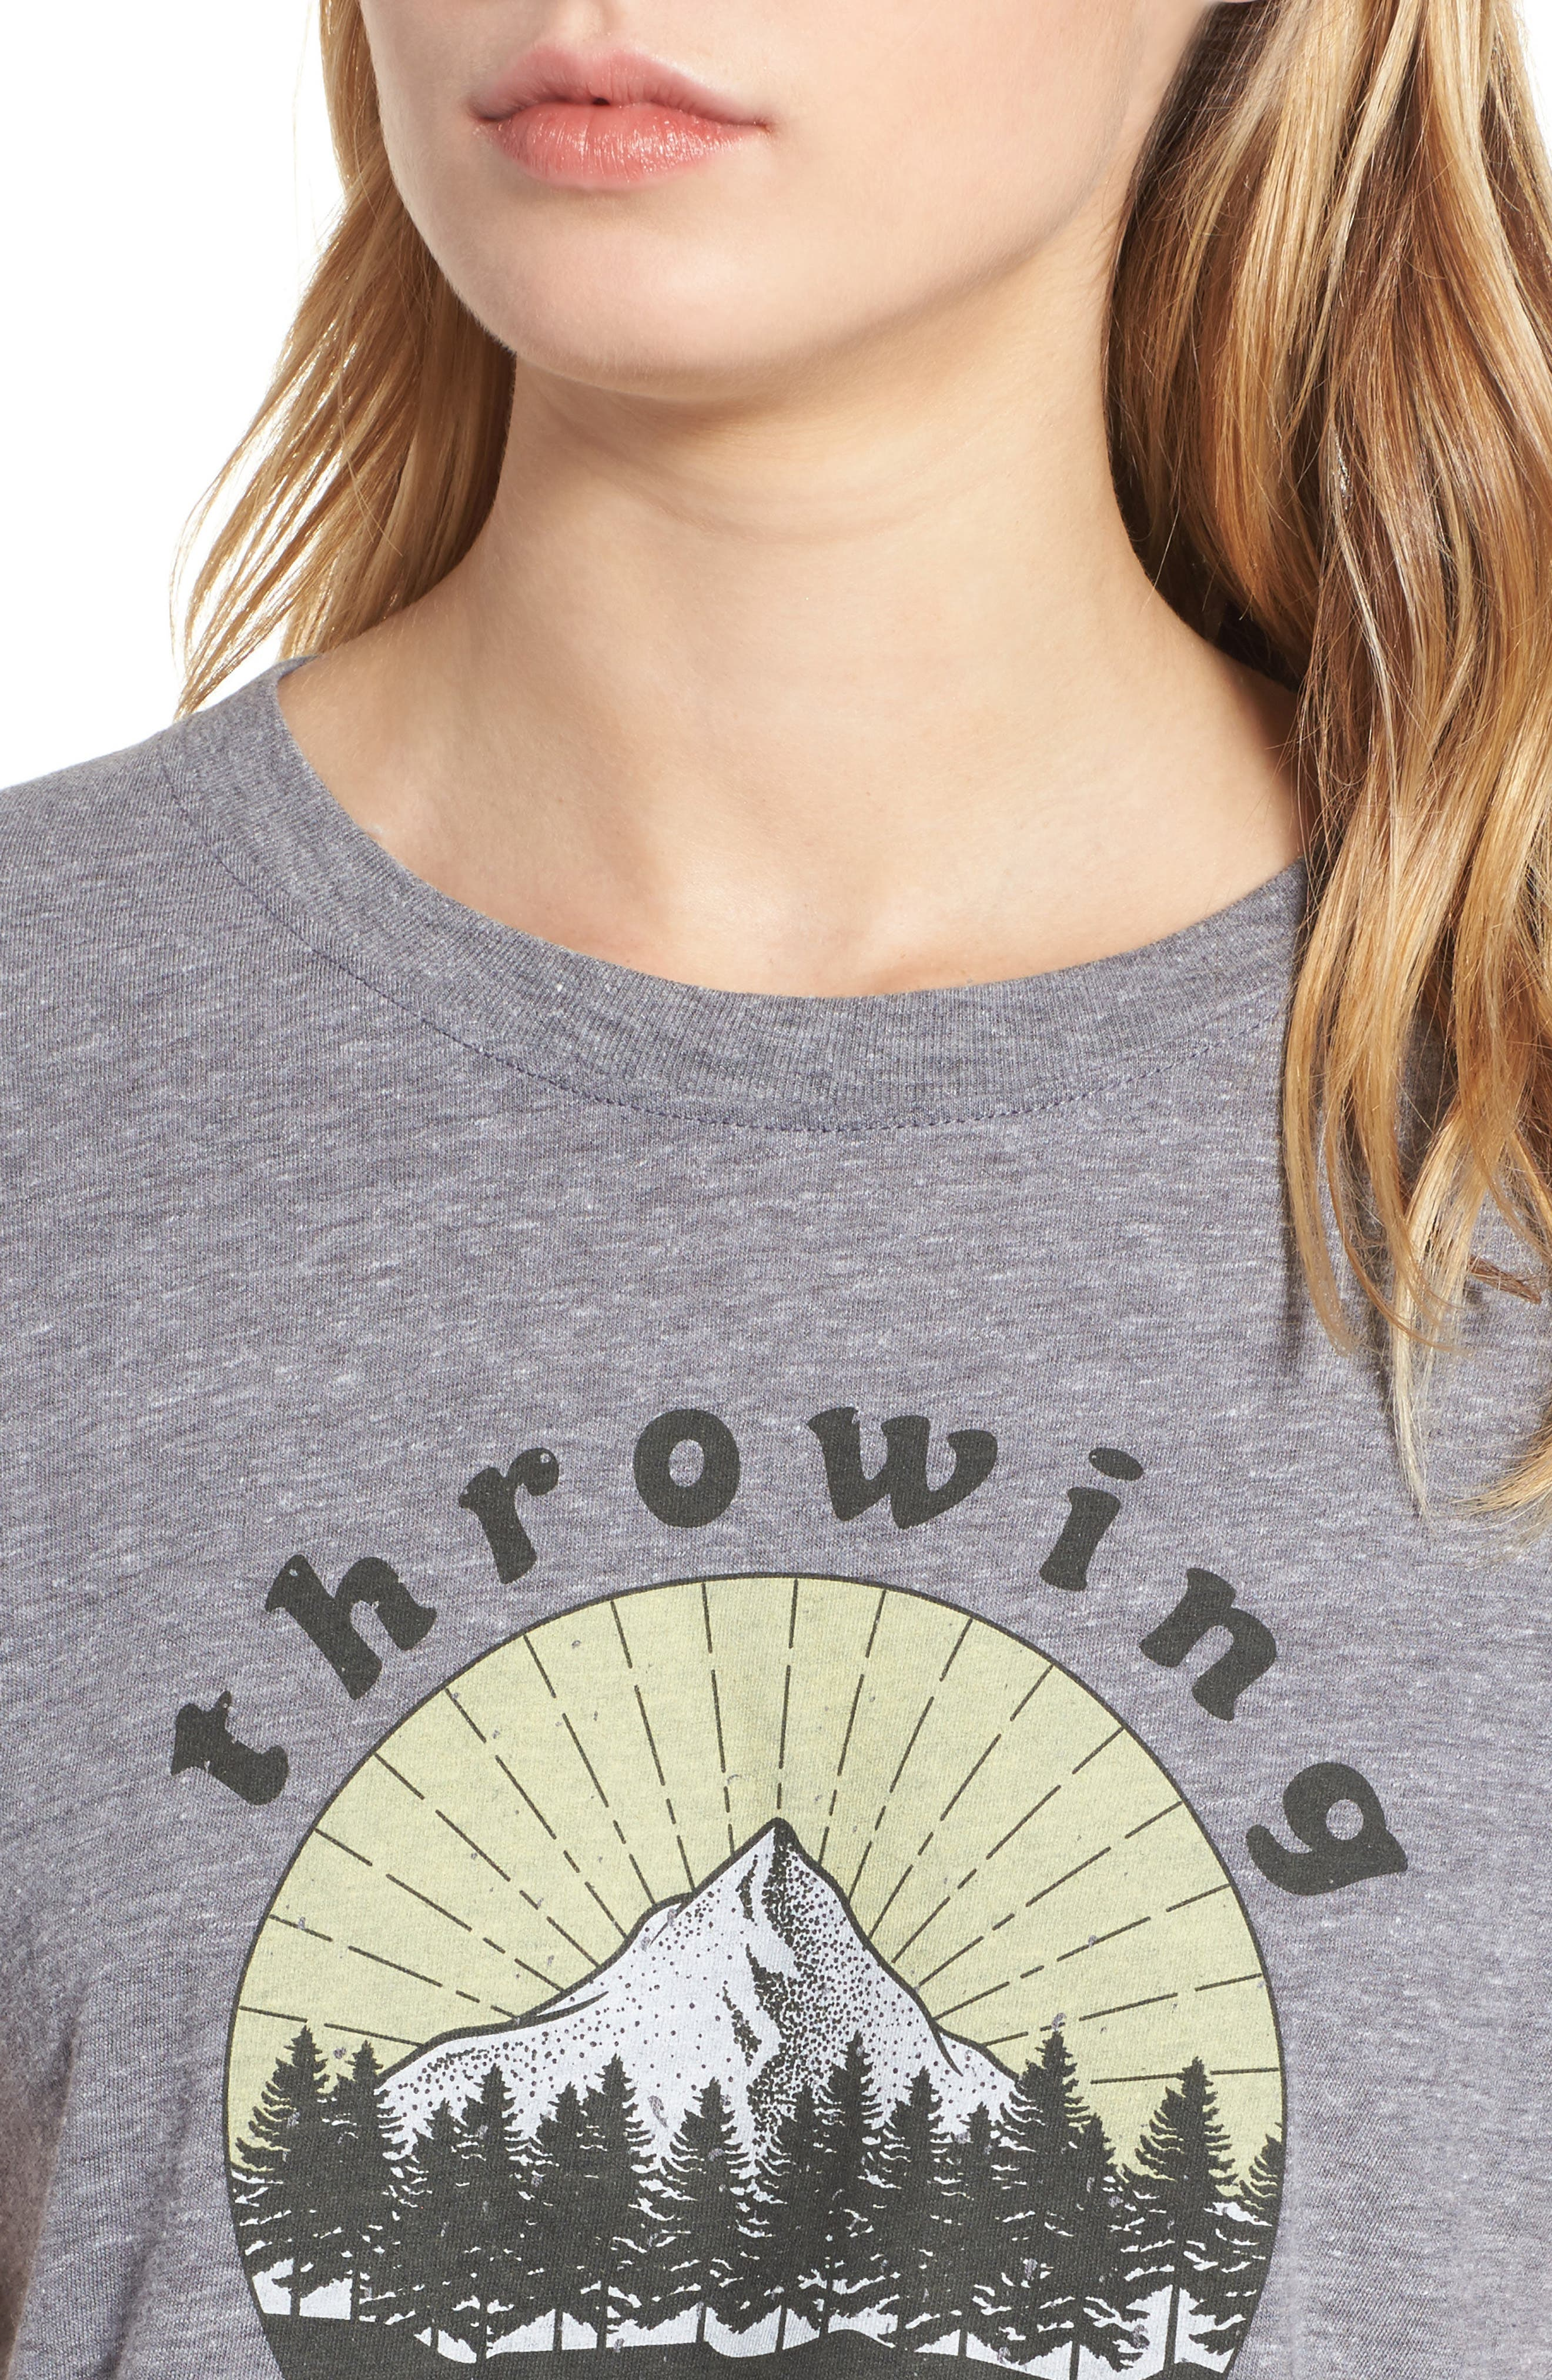 Throwing Shade Graphic Tee,                             Alternate thumbnail 4, color,